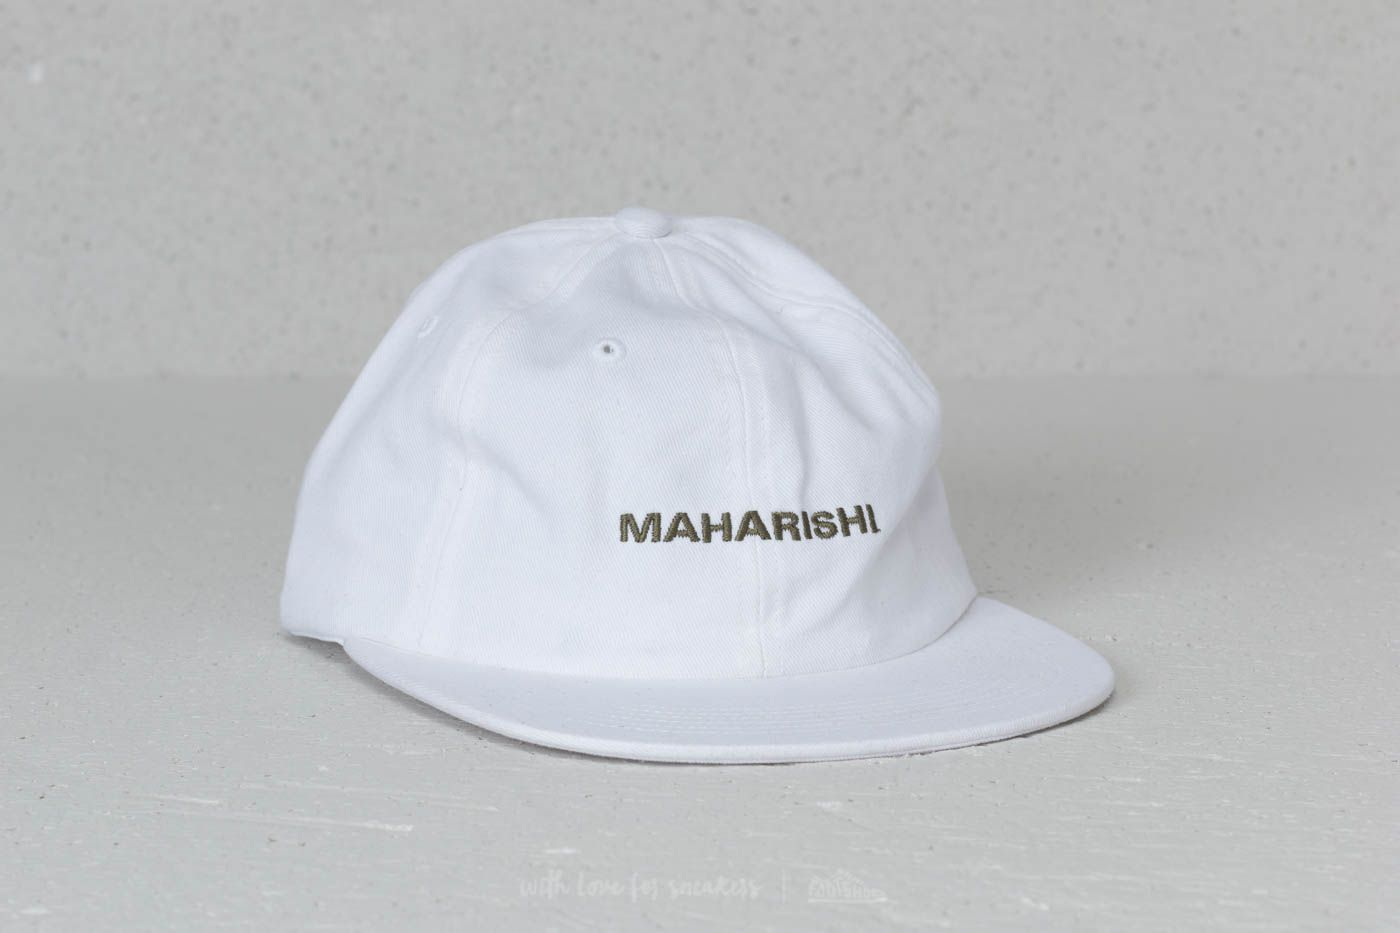 maharishi Miltype 6 Panel Cap White at a great price 27 € bestell bei  Footshop ae2f9ebd4b4c